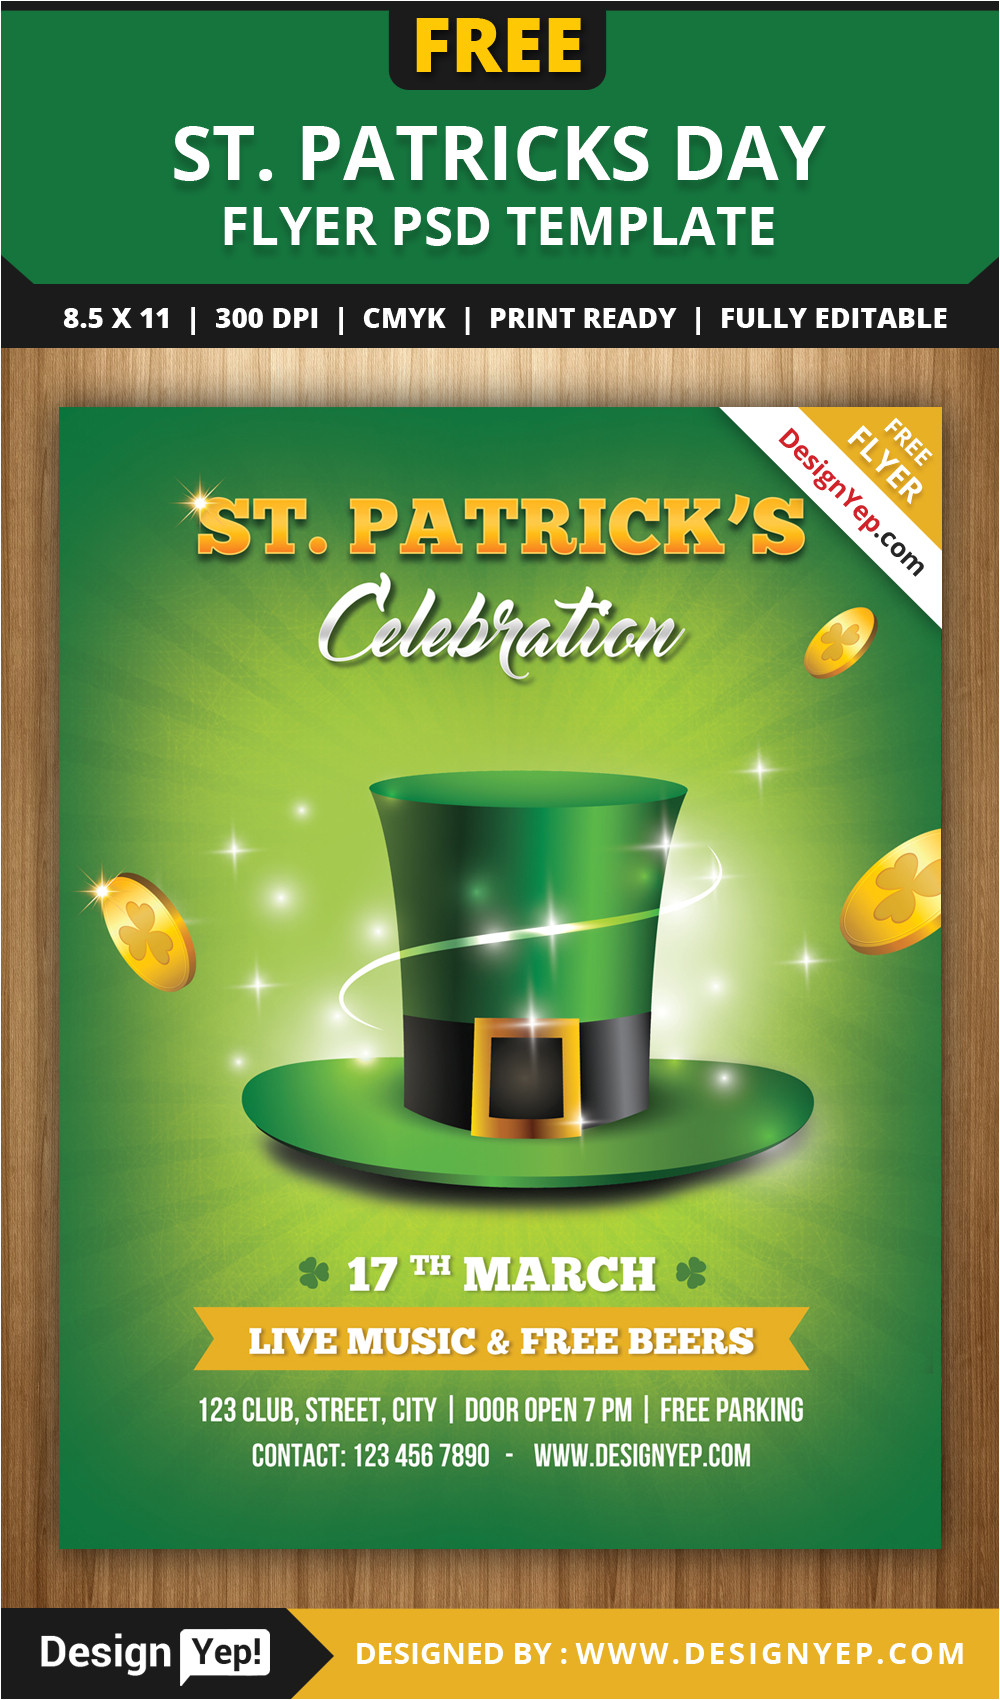 free st patricks day flyer template